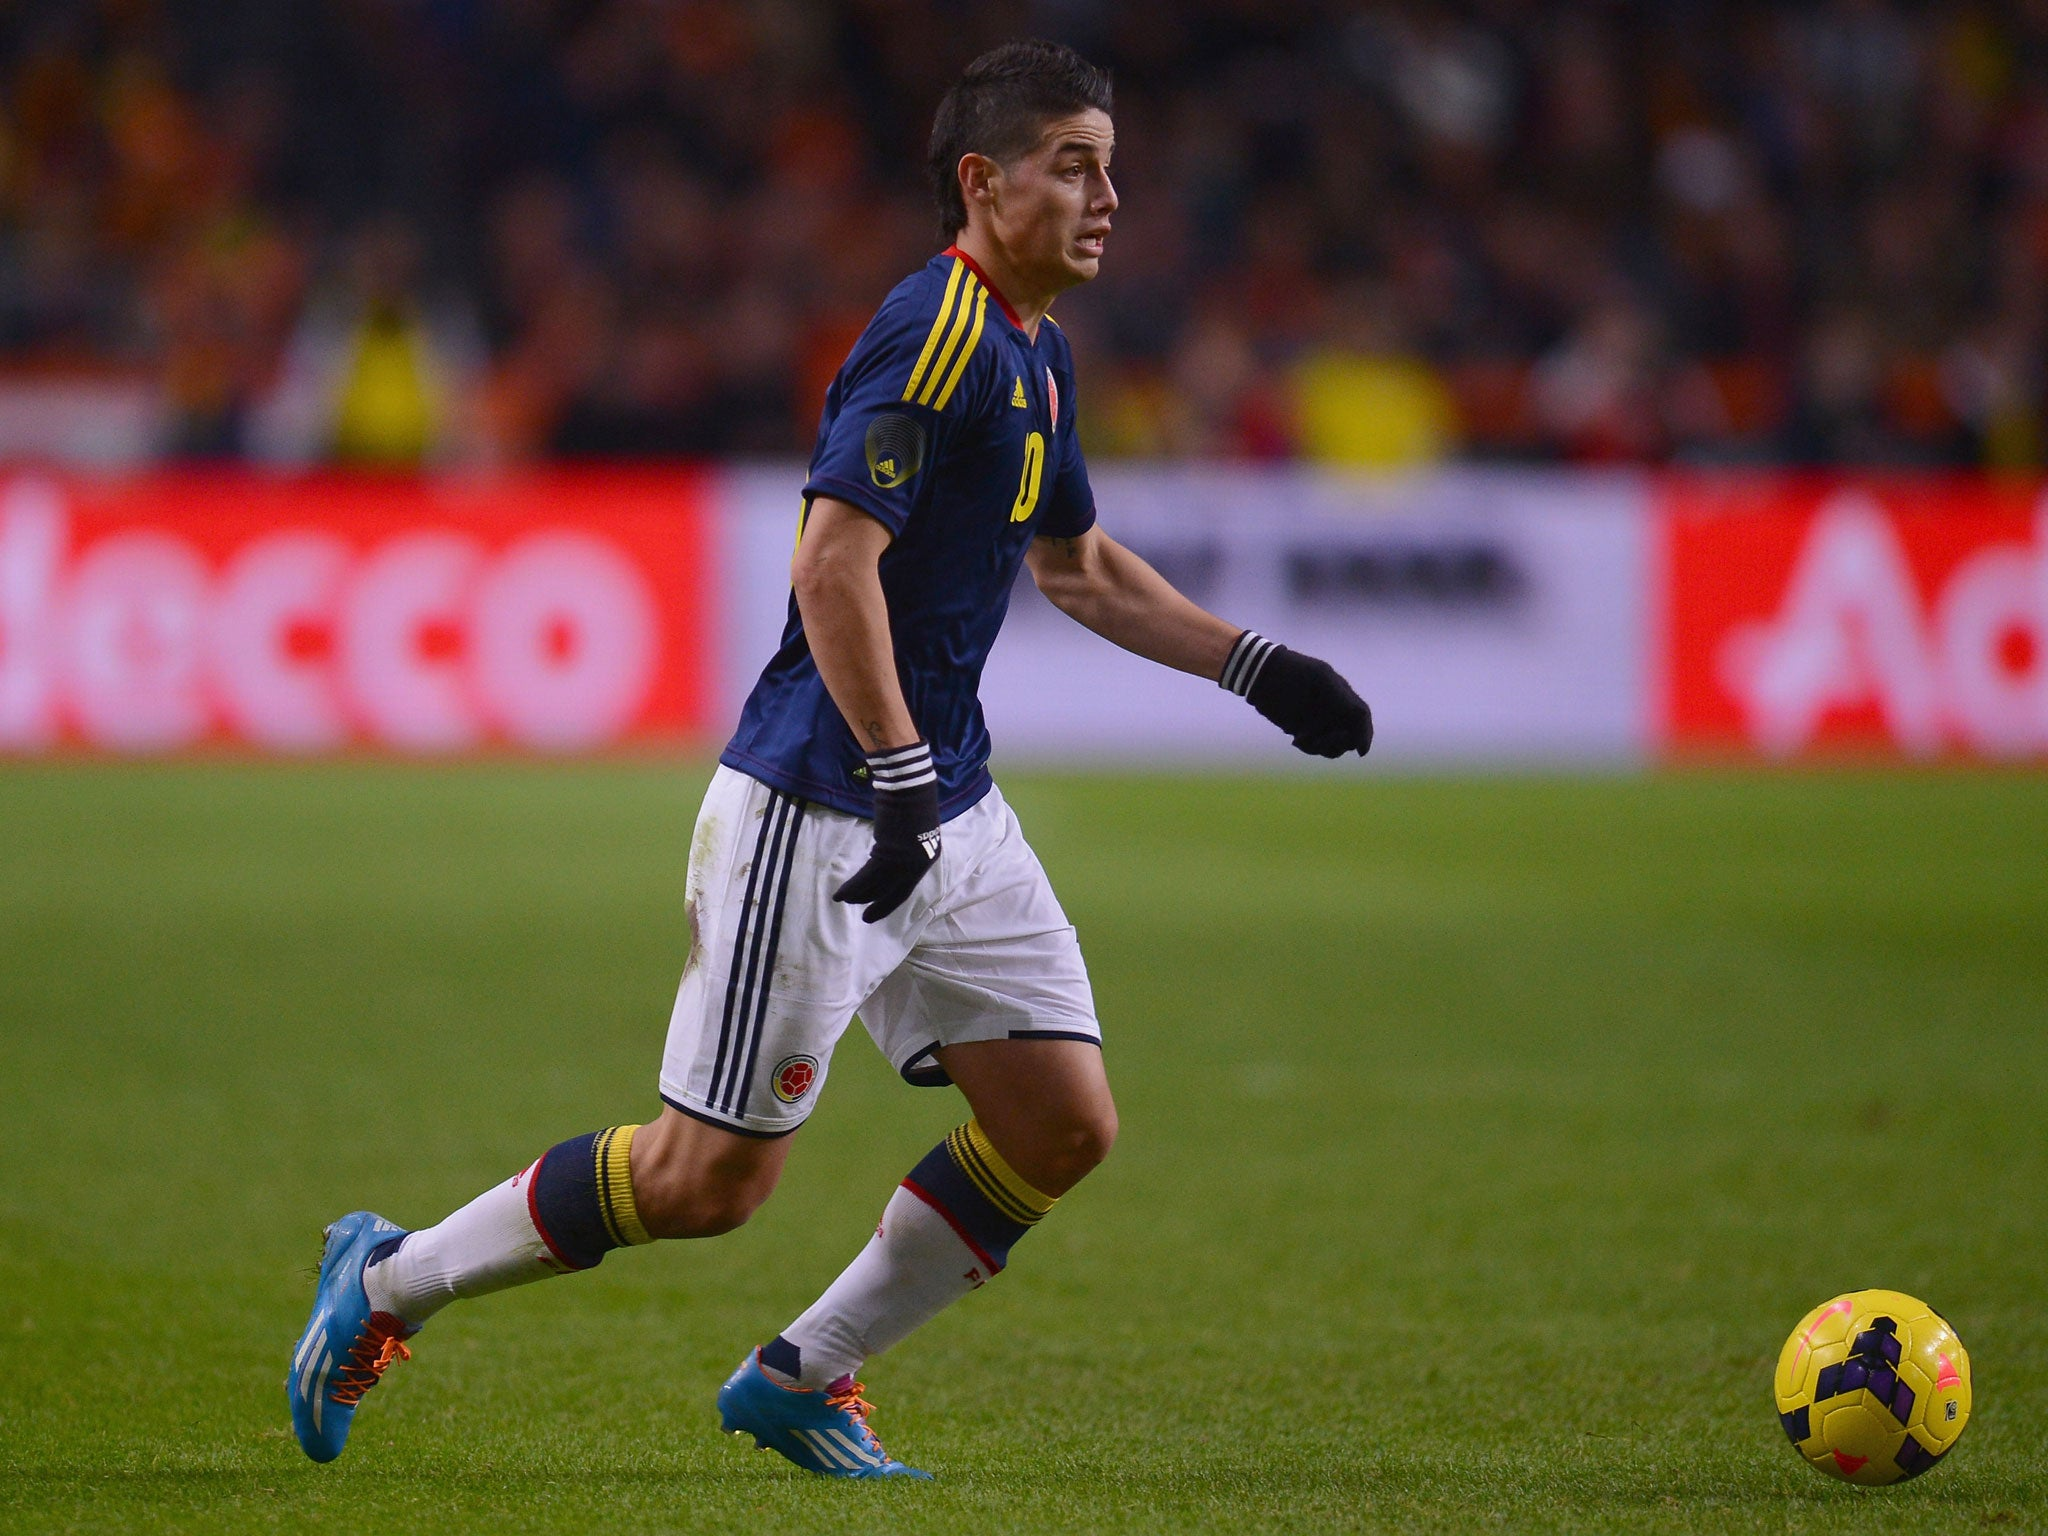 World Cup 2014: Player profile - who is James Rodriguez, the Colombia attacking midfielder?